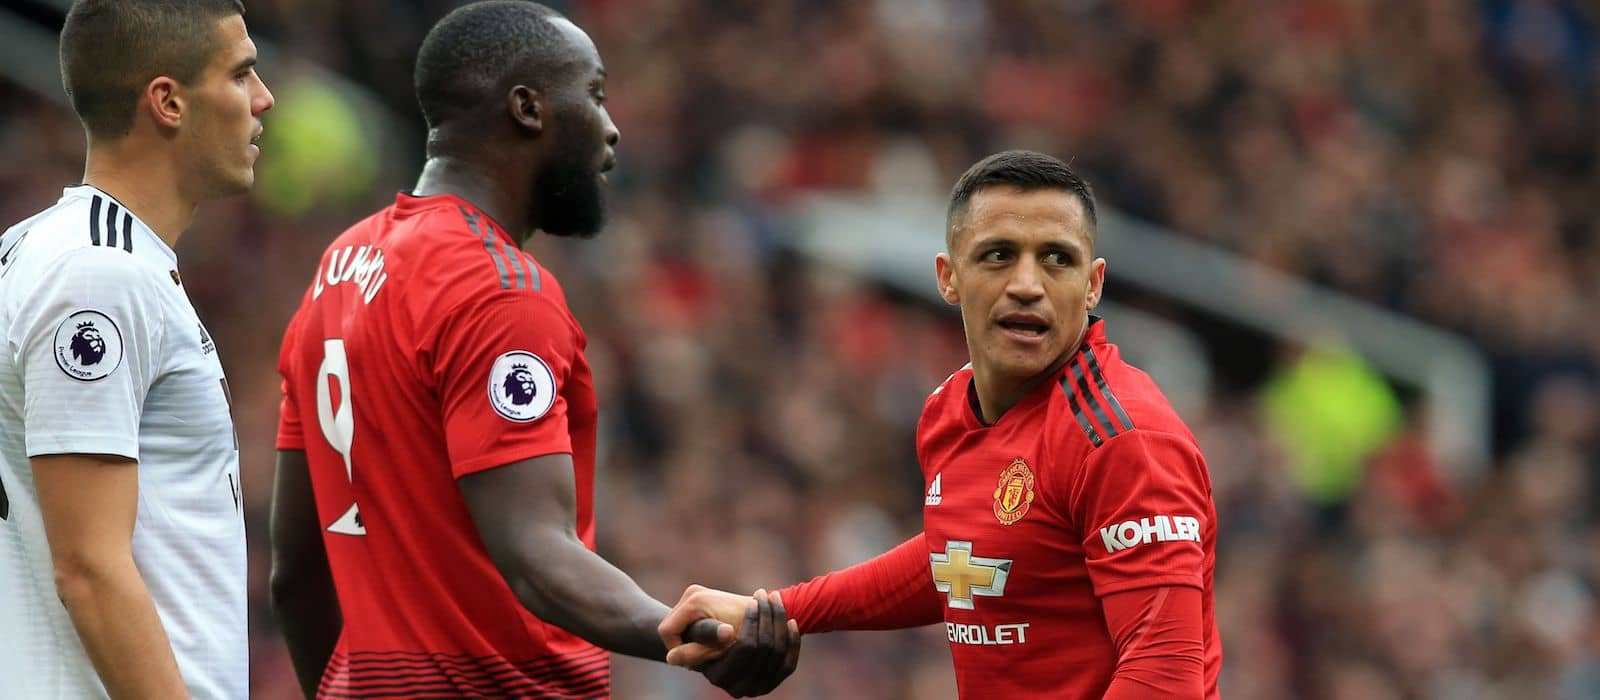 Alexis Sanchez finally makes decision on Manchester United future: report